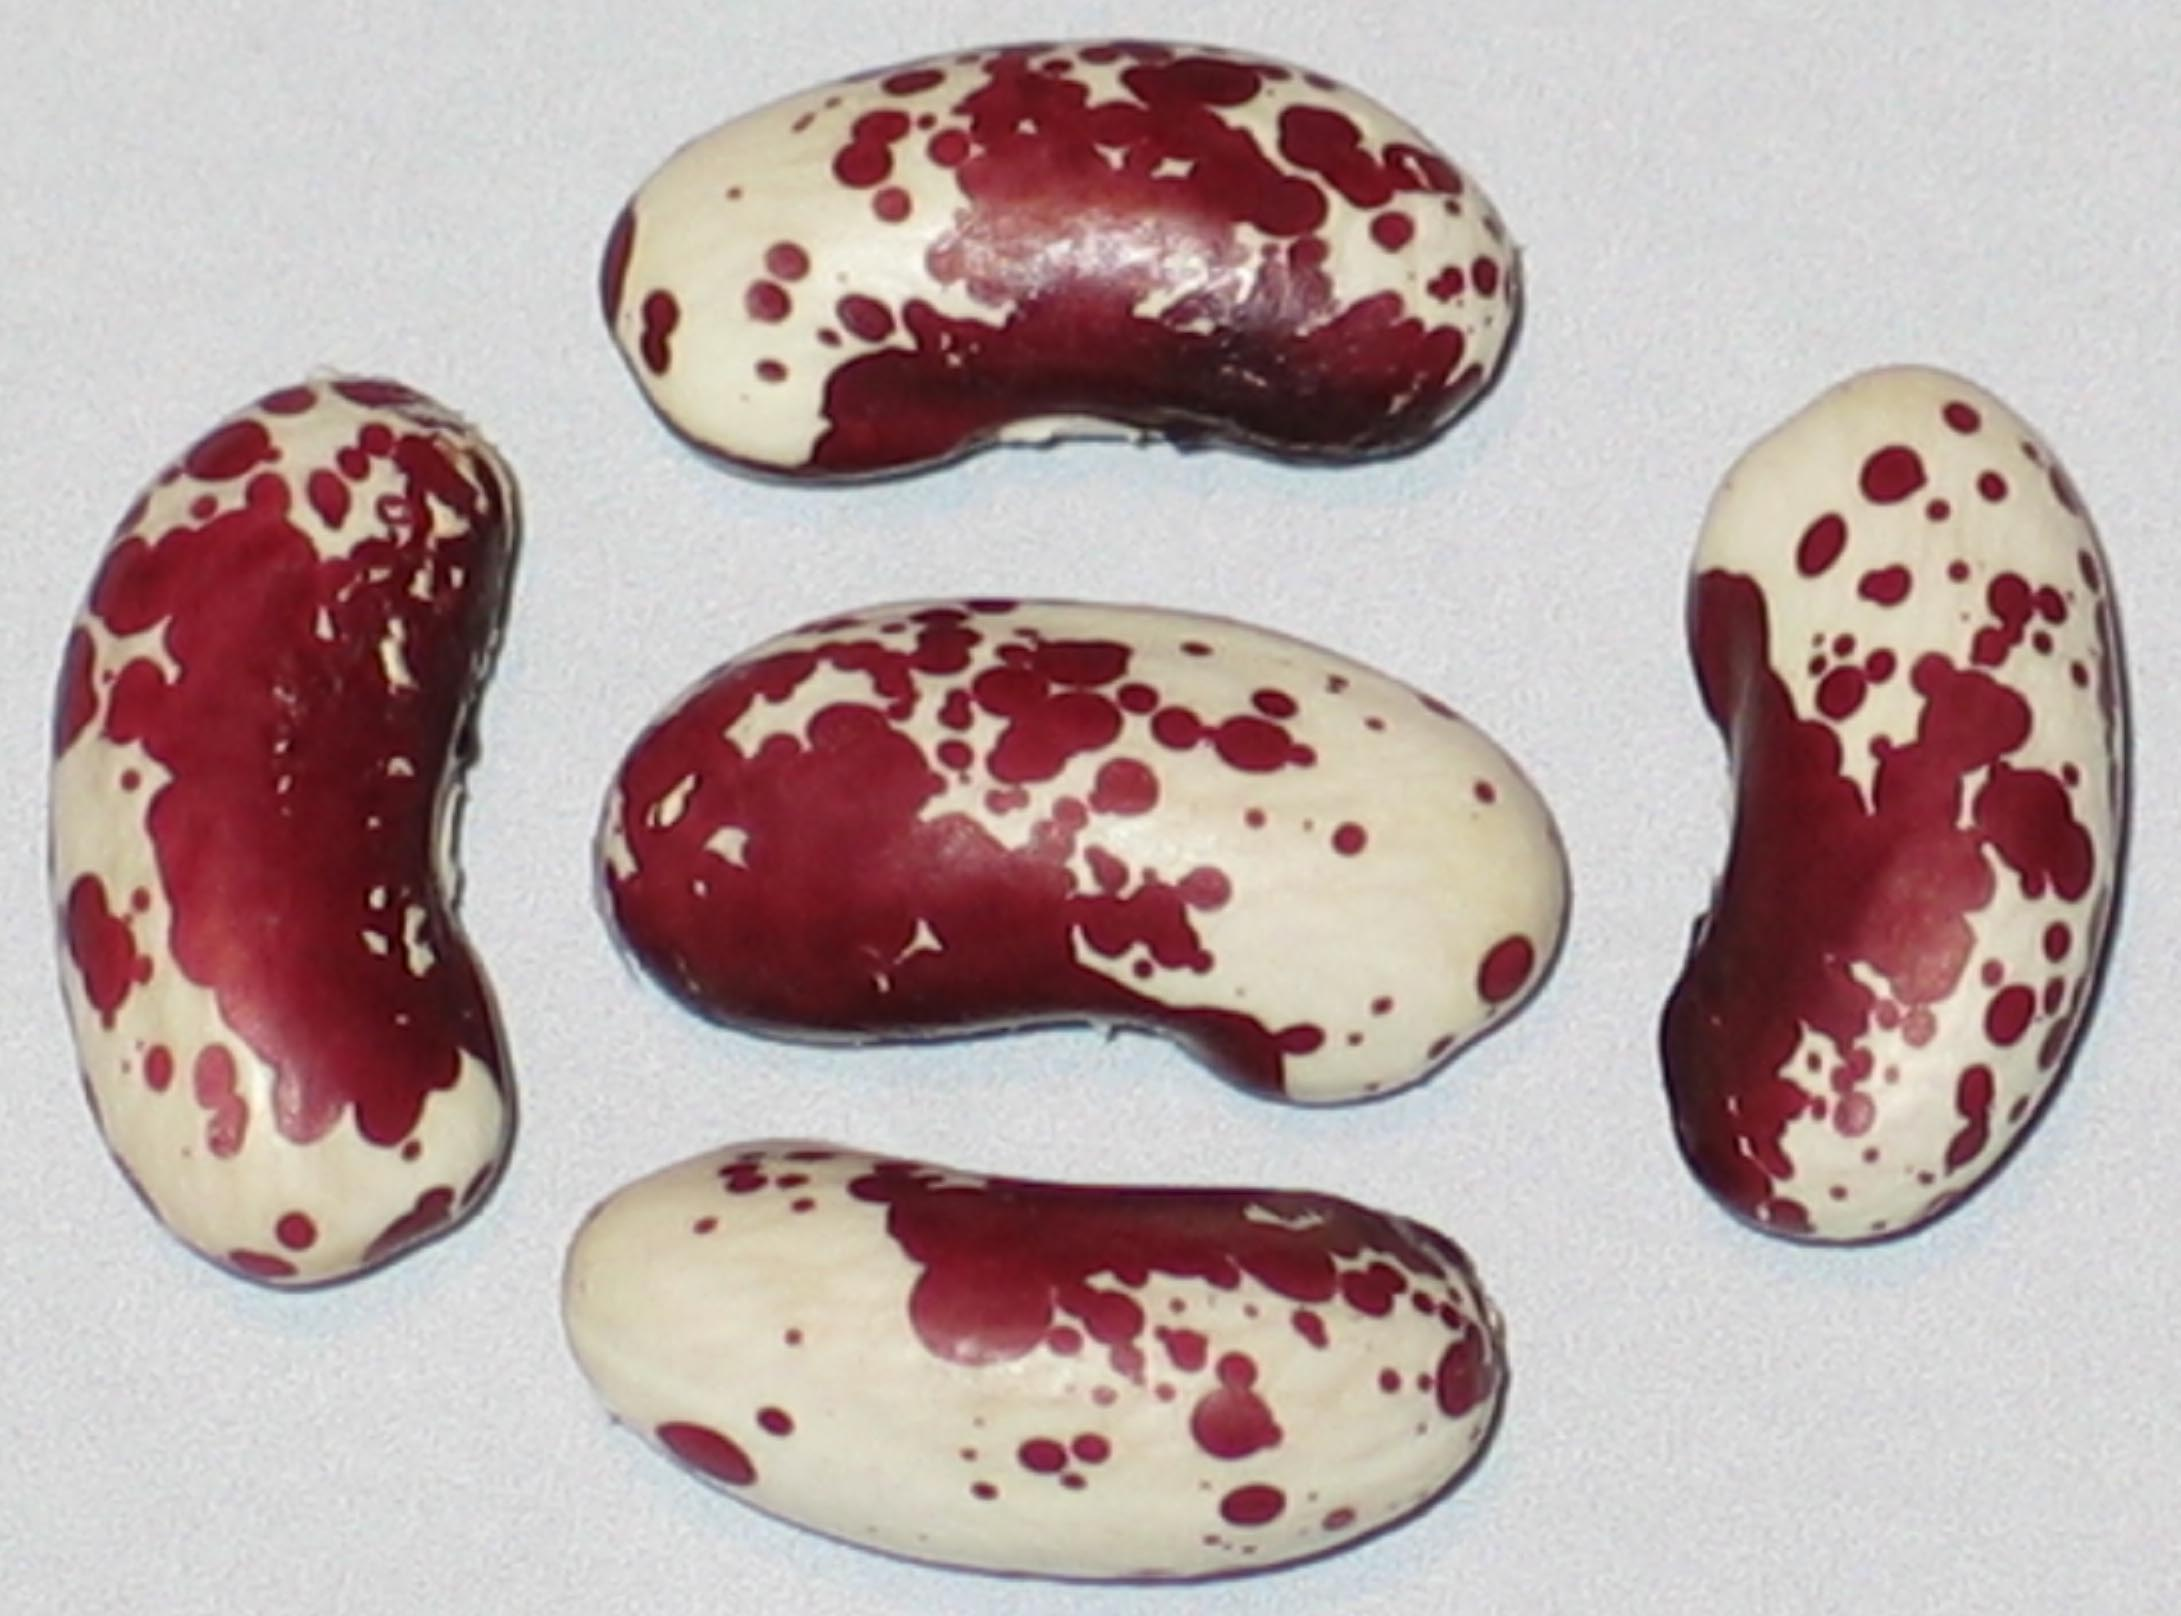 image of Speckled 1770 beans